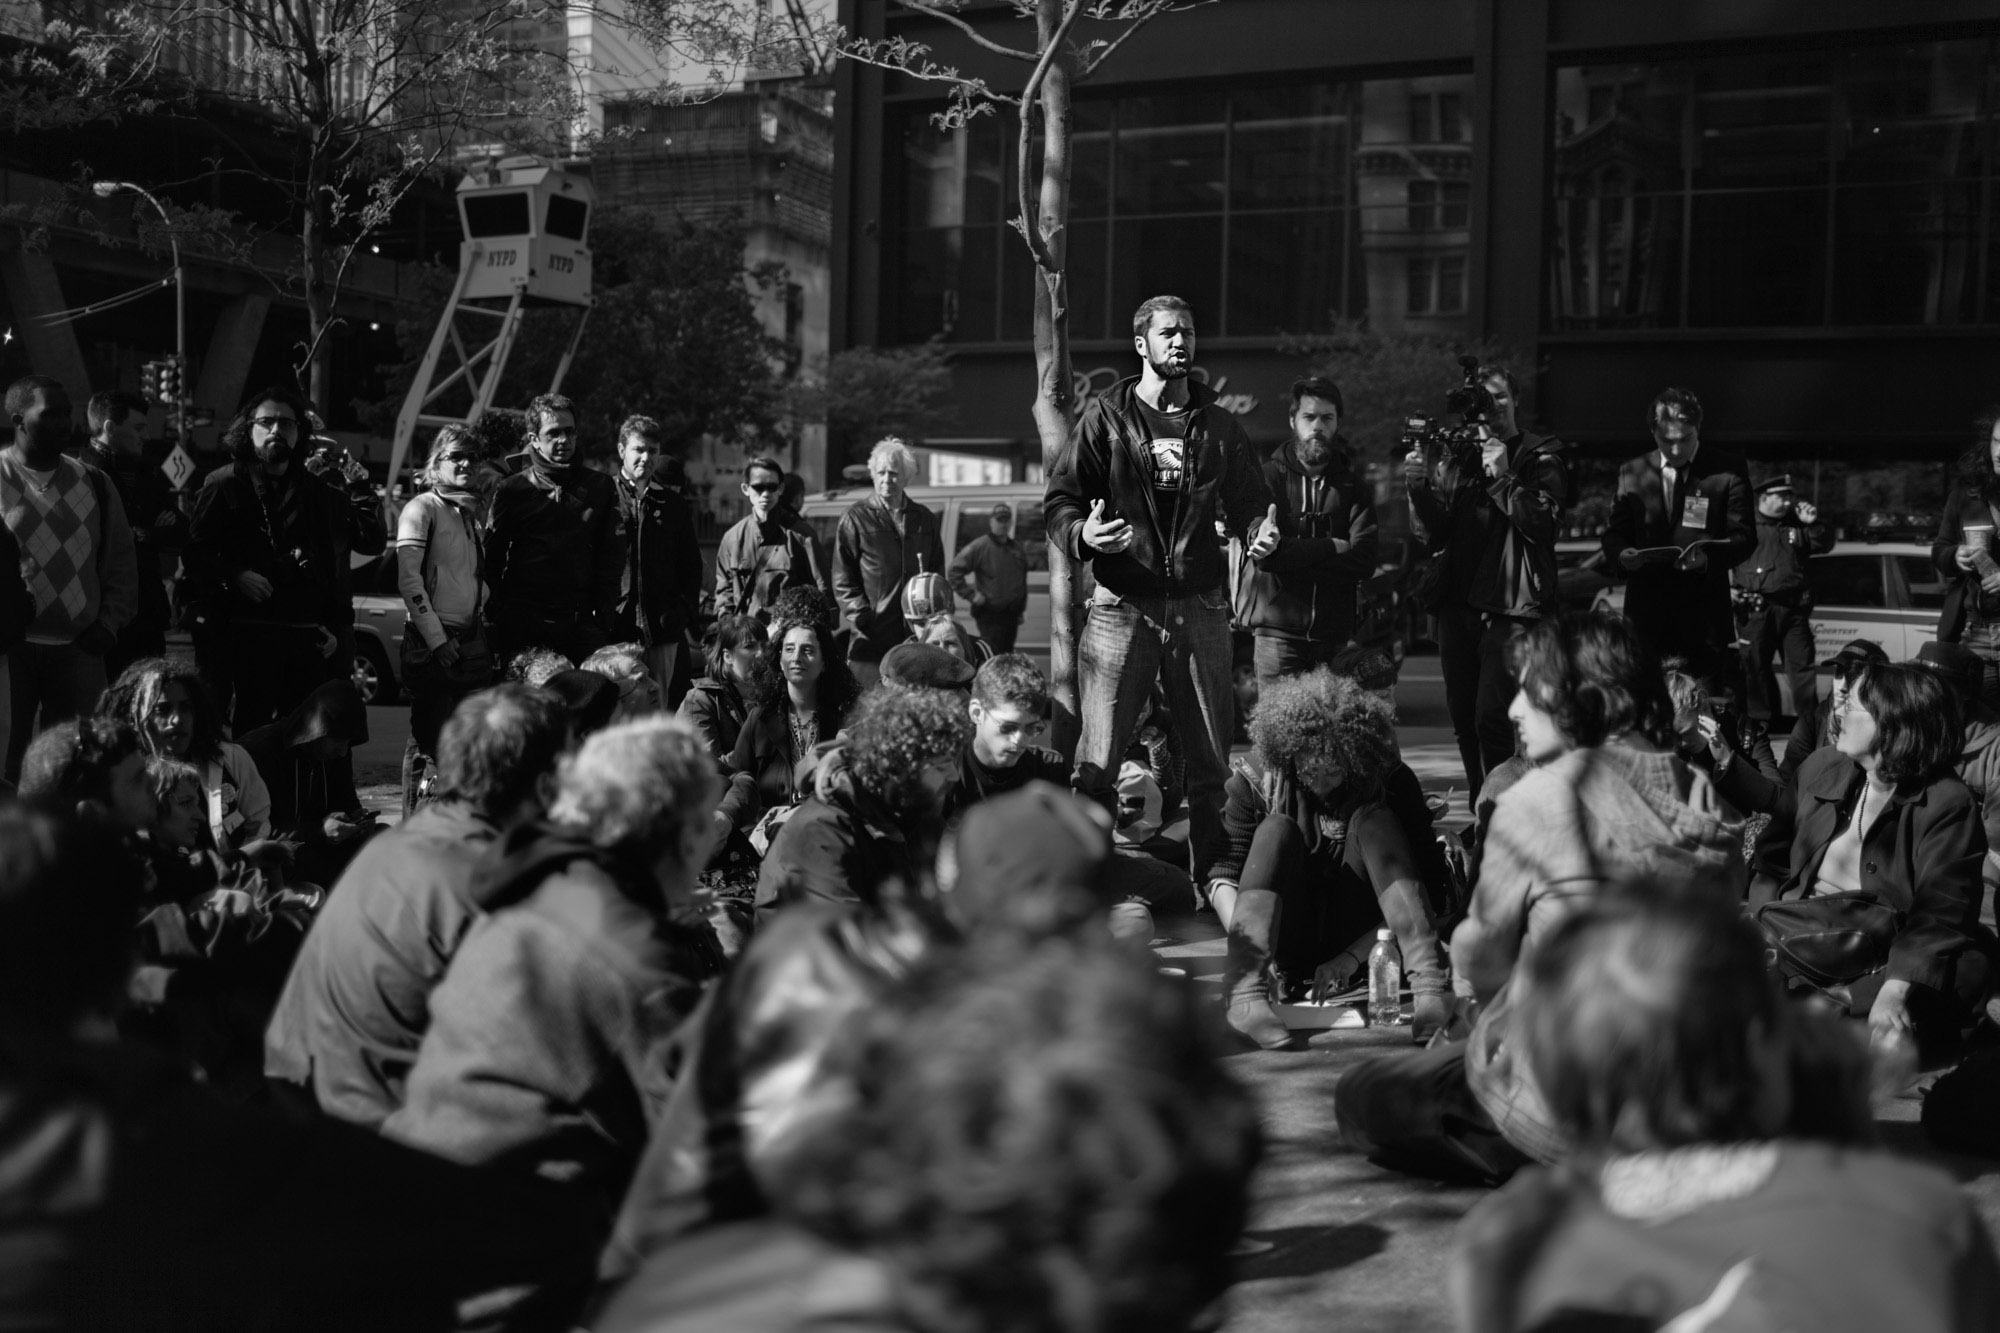 An OWS organizer gives instructions and guidelines to protestors at Zuccotti Park.